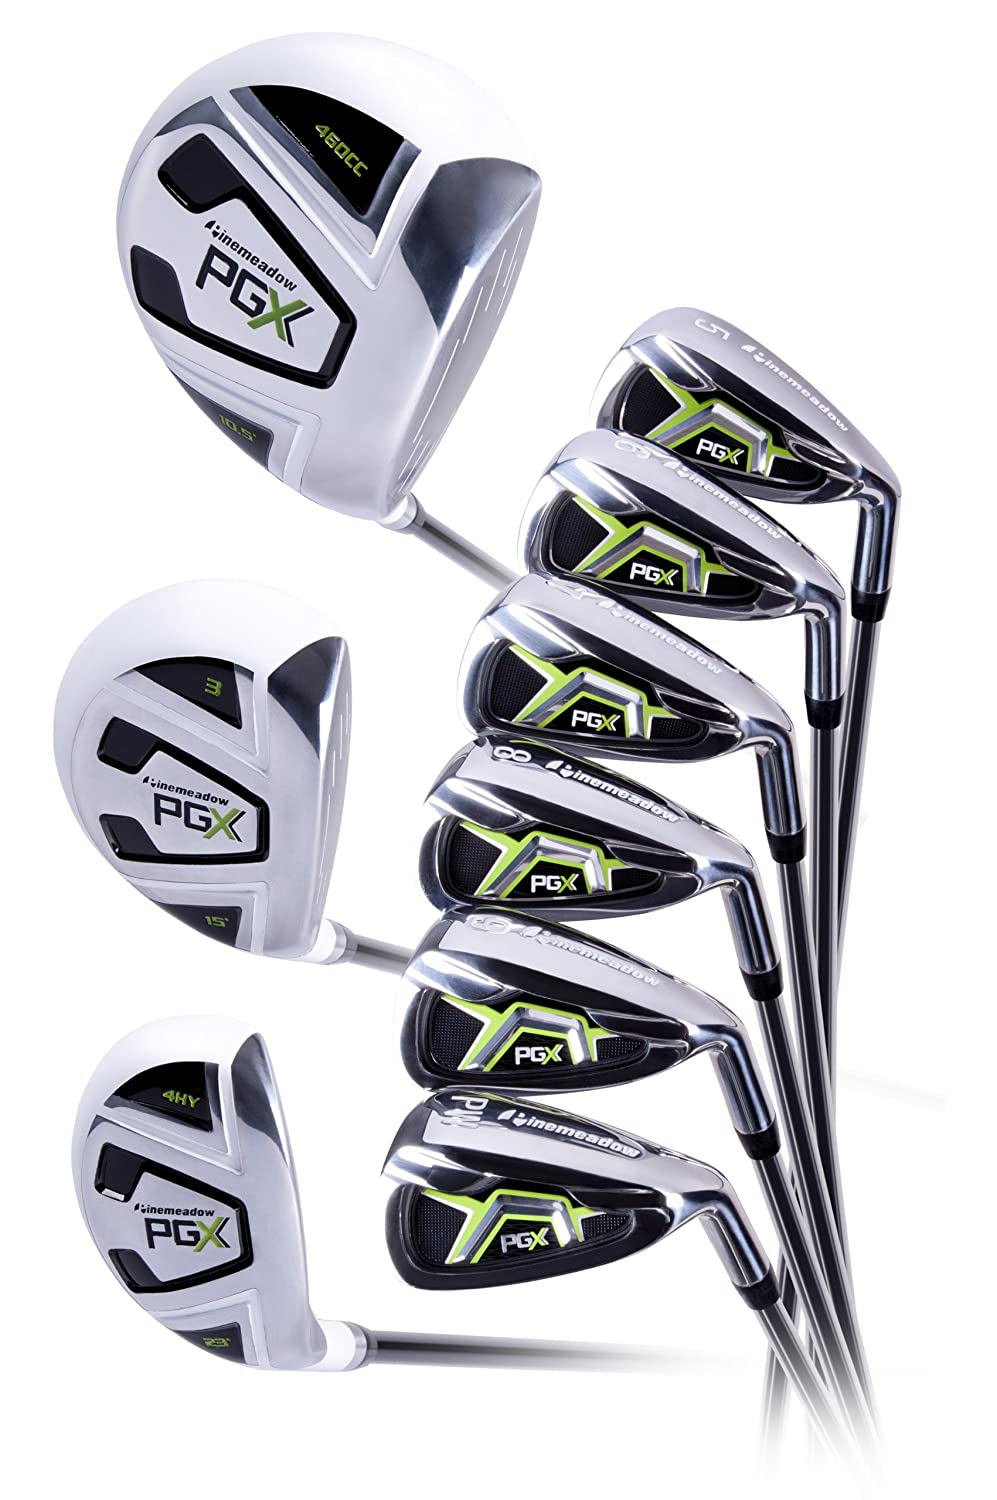 Pinemeadow Mens PGX Golf Set-Driver, 3 Wood, Hybrid, 5-PW Irons (Regular Flex)